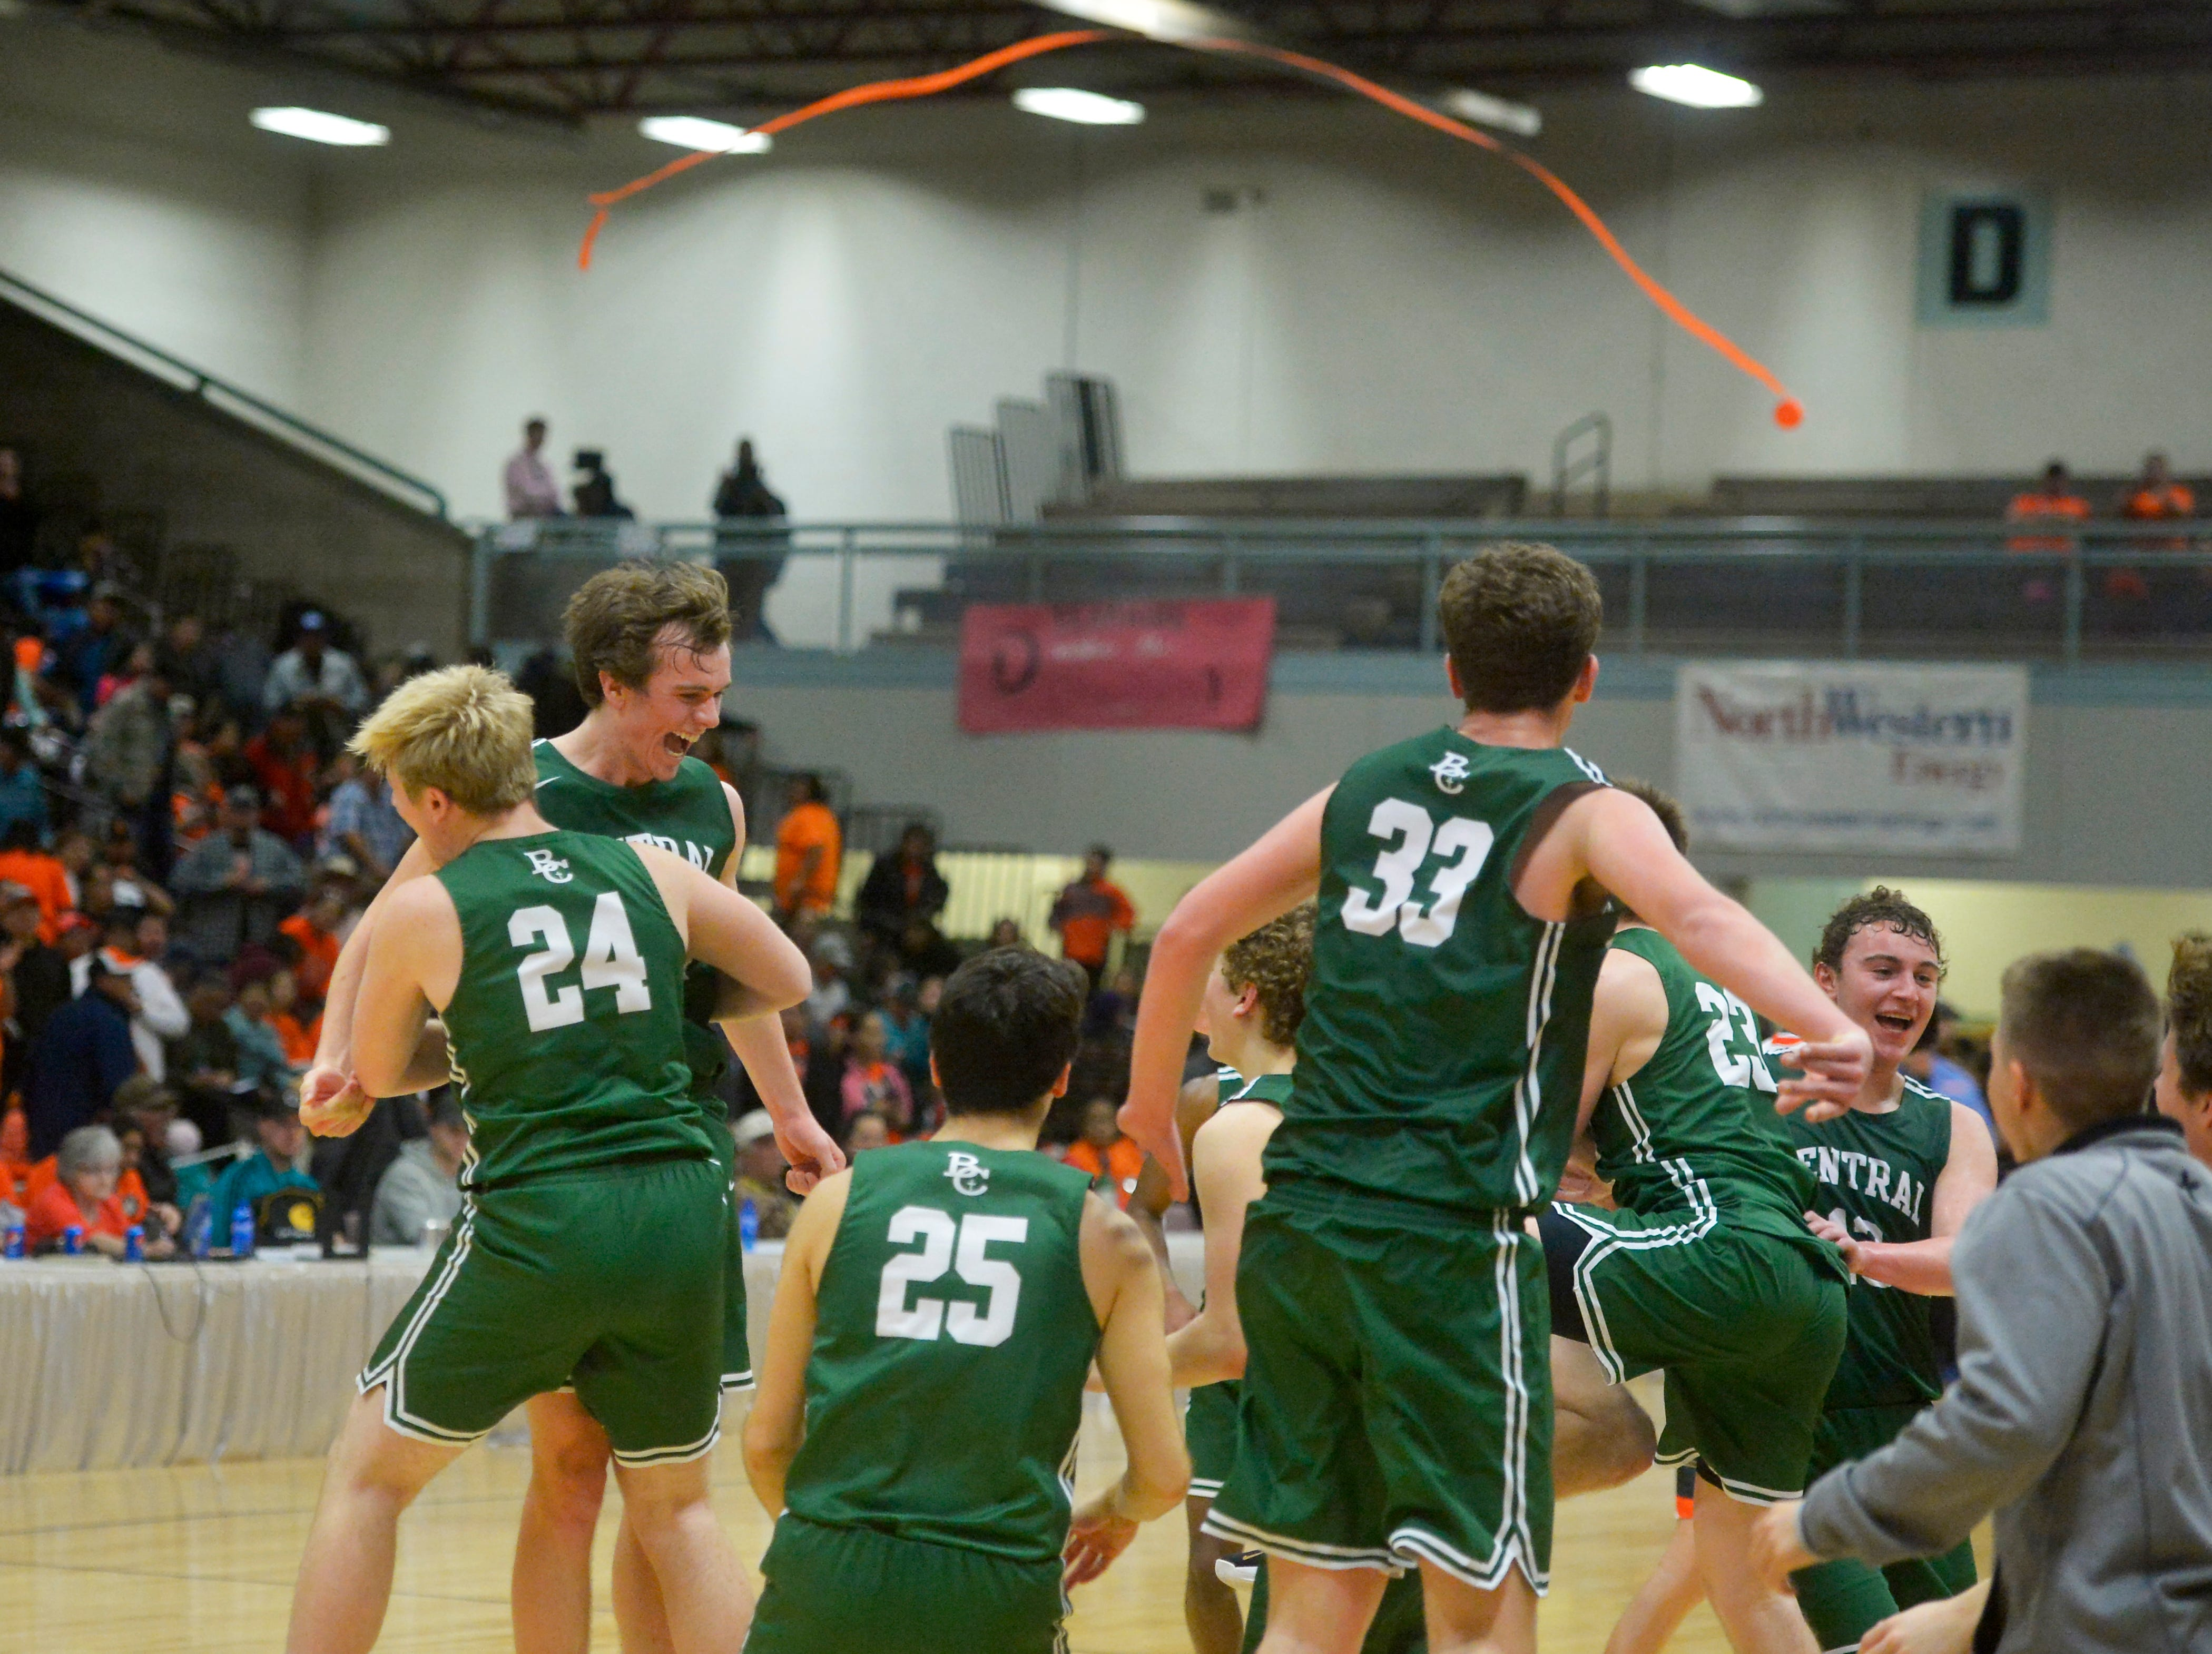 Billings Central defeated Hardin 62-44 in the championship game of the State Class A Basketball Tournament in the Four Seasons Arena, Saturday.